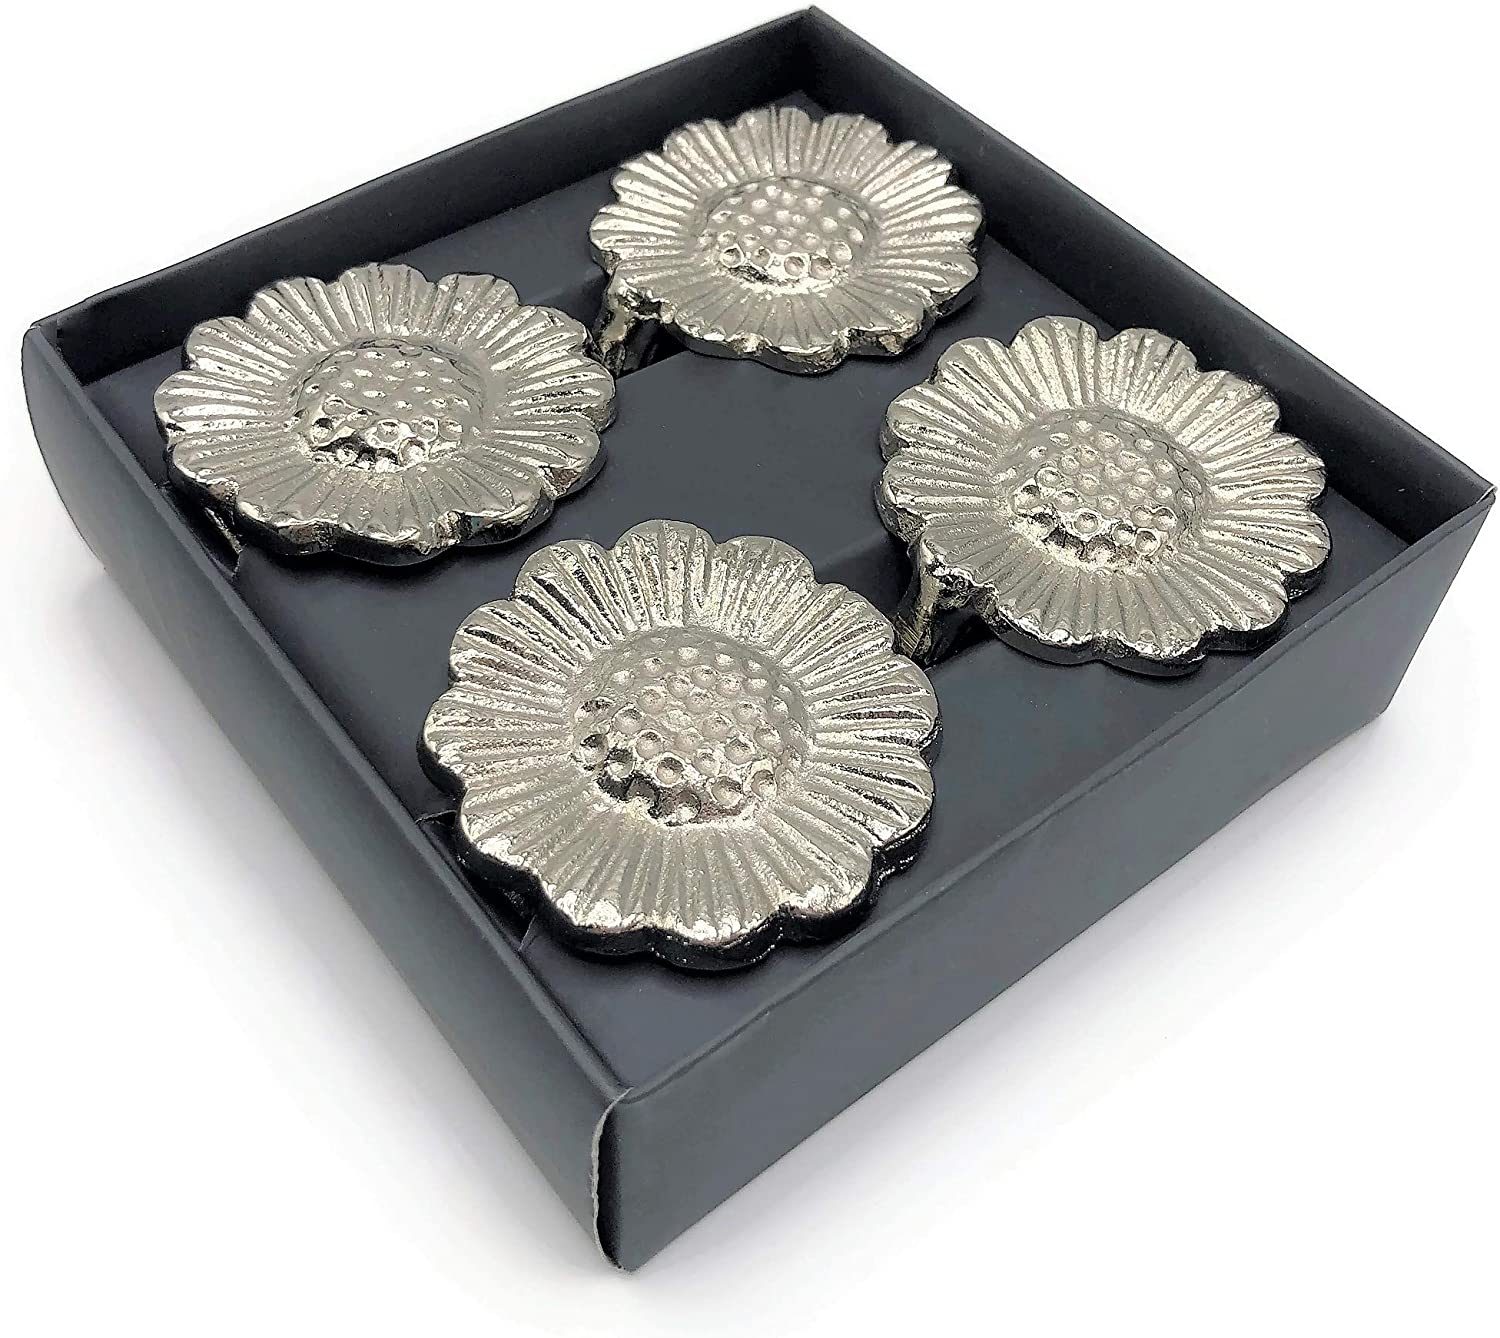 Sturdy Weight Ring for Beautiful Table Settings Kassatex Fine Linens Set of 4 Silver Plated Sunflower Napkin Rings Family Gatherings Everyday Place Settings Dinner Parties